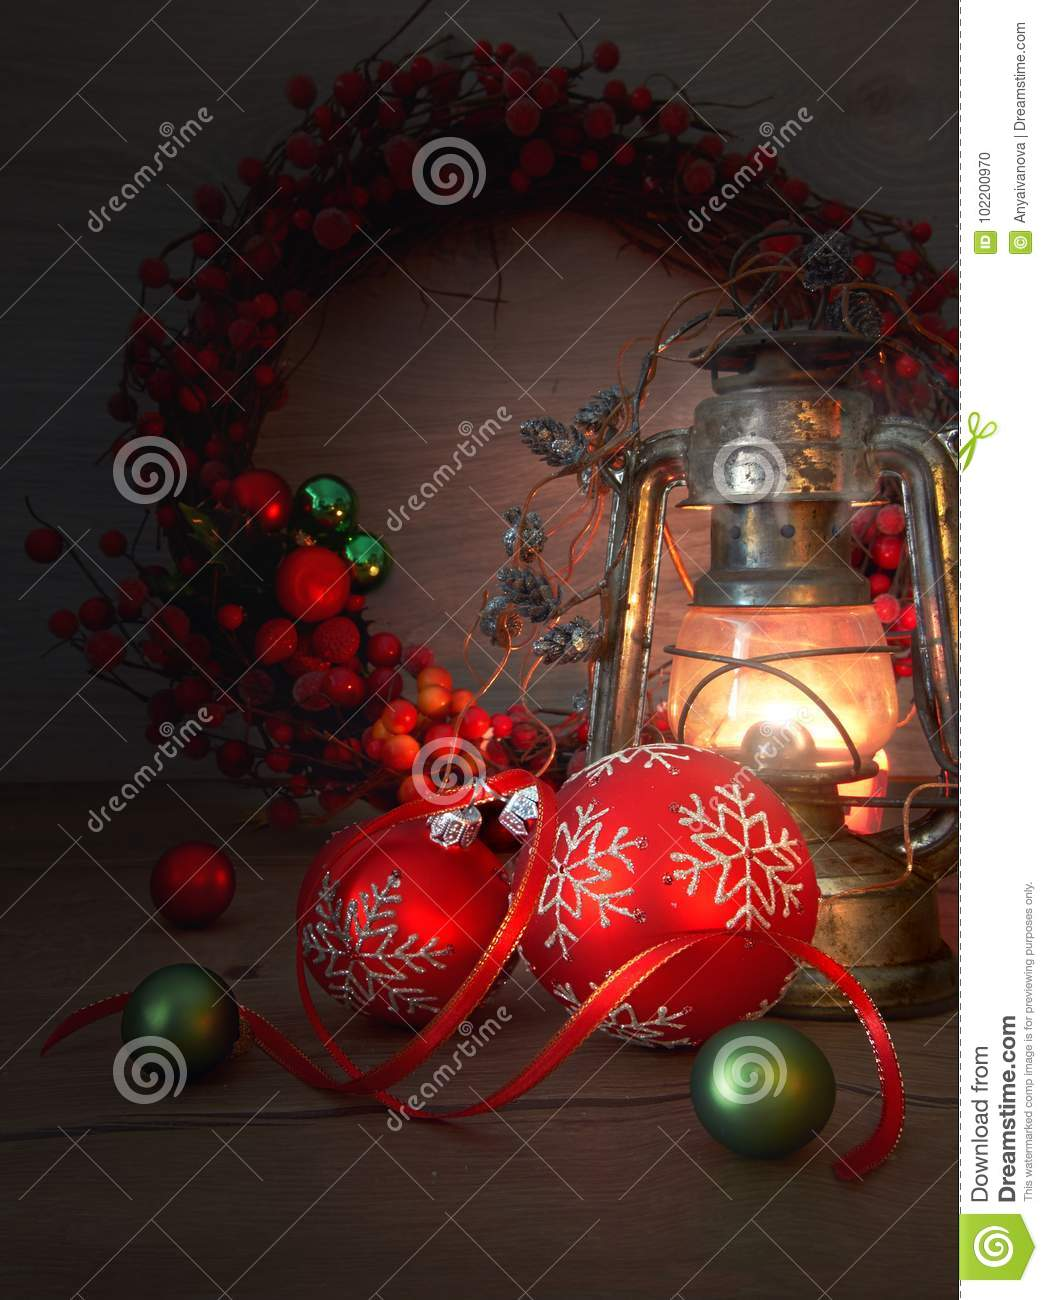 Old Lantern And Christmas Decorations On Wood Stock Photo - Image of ...